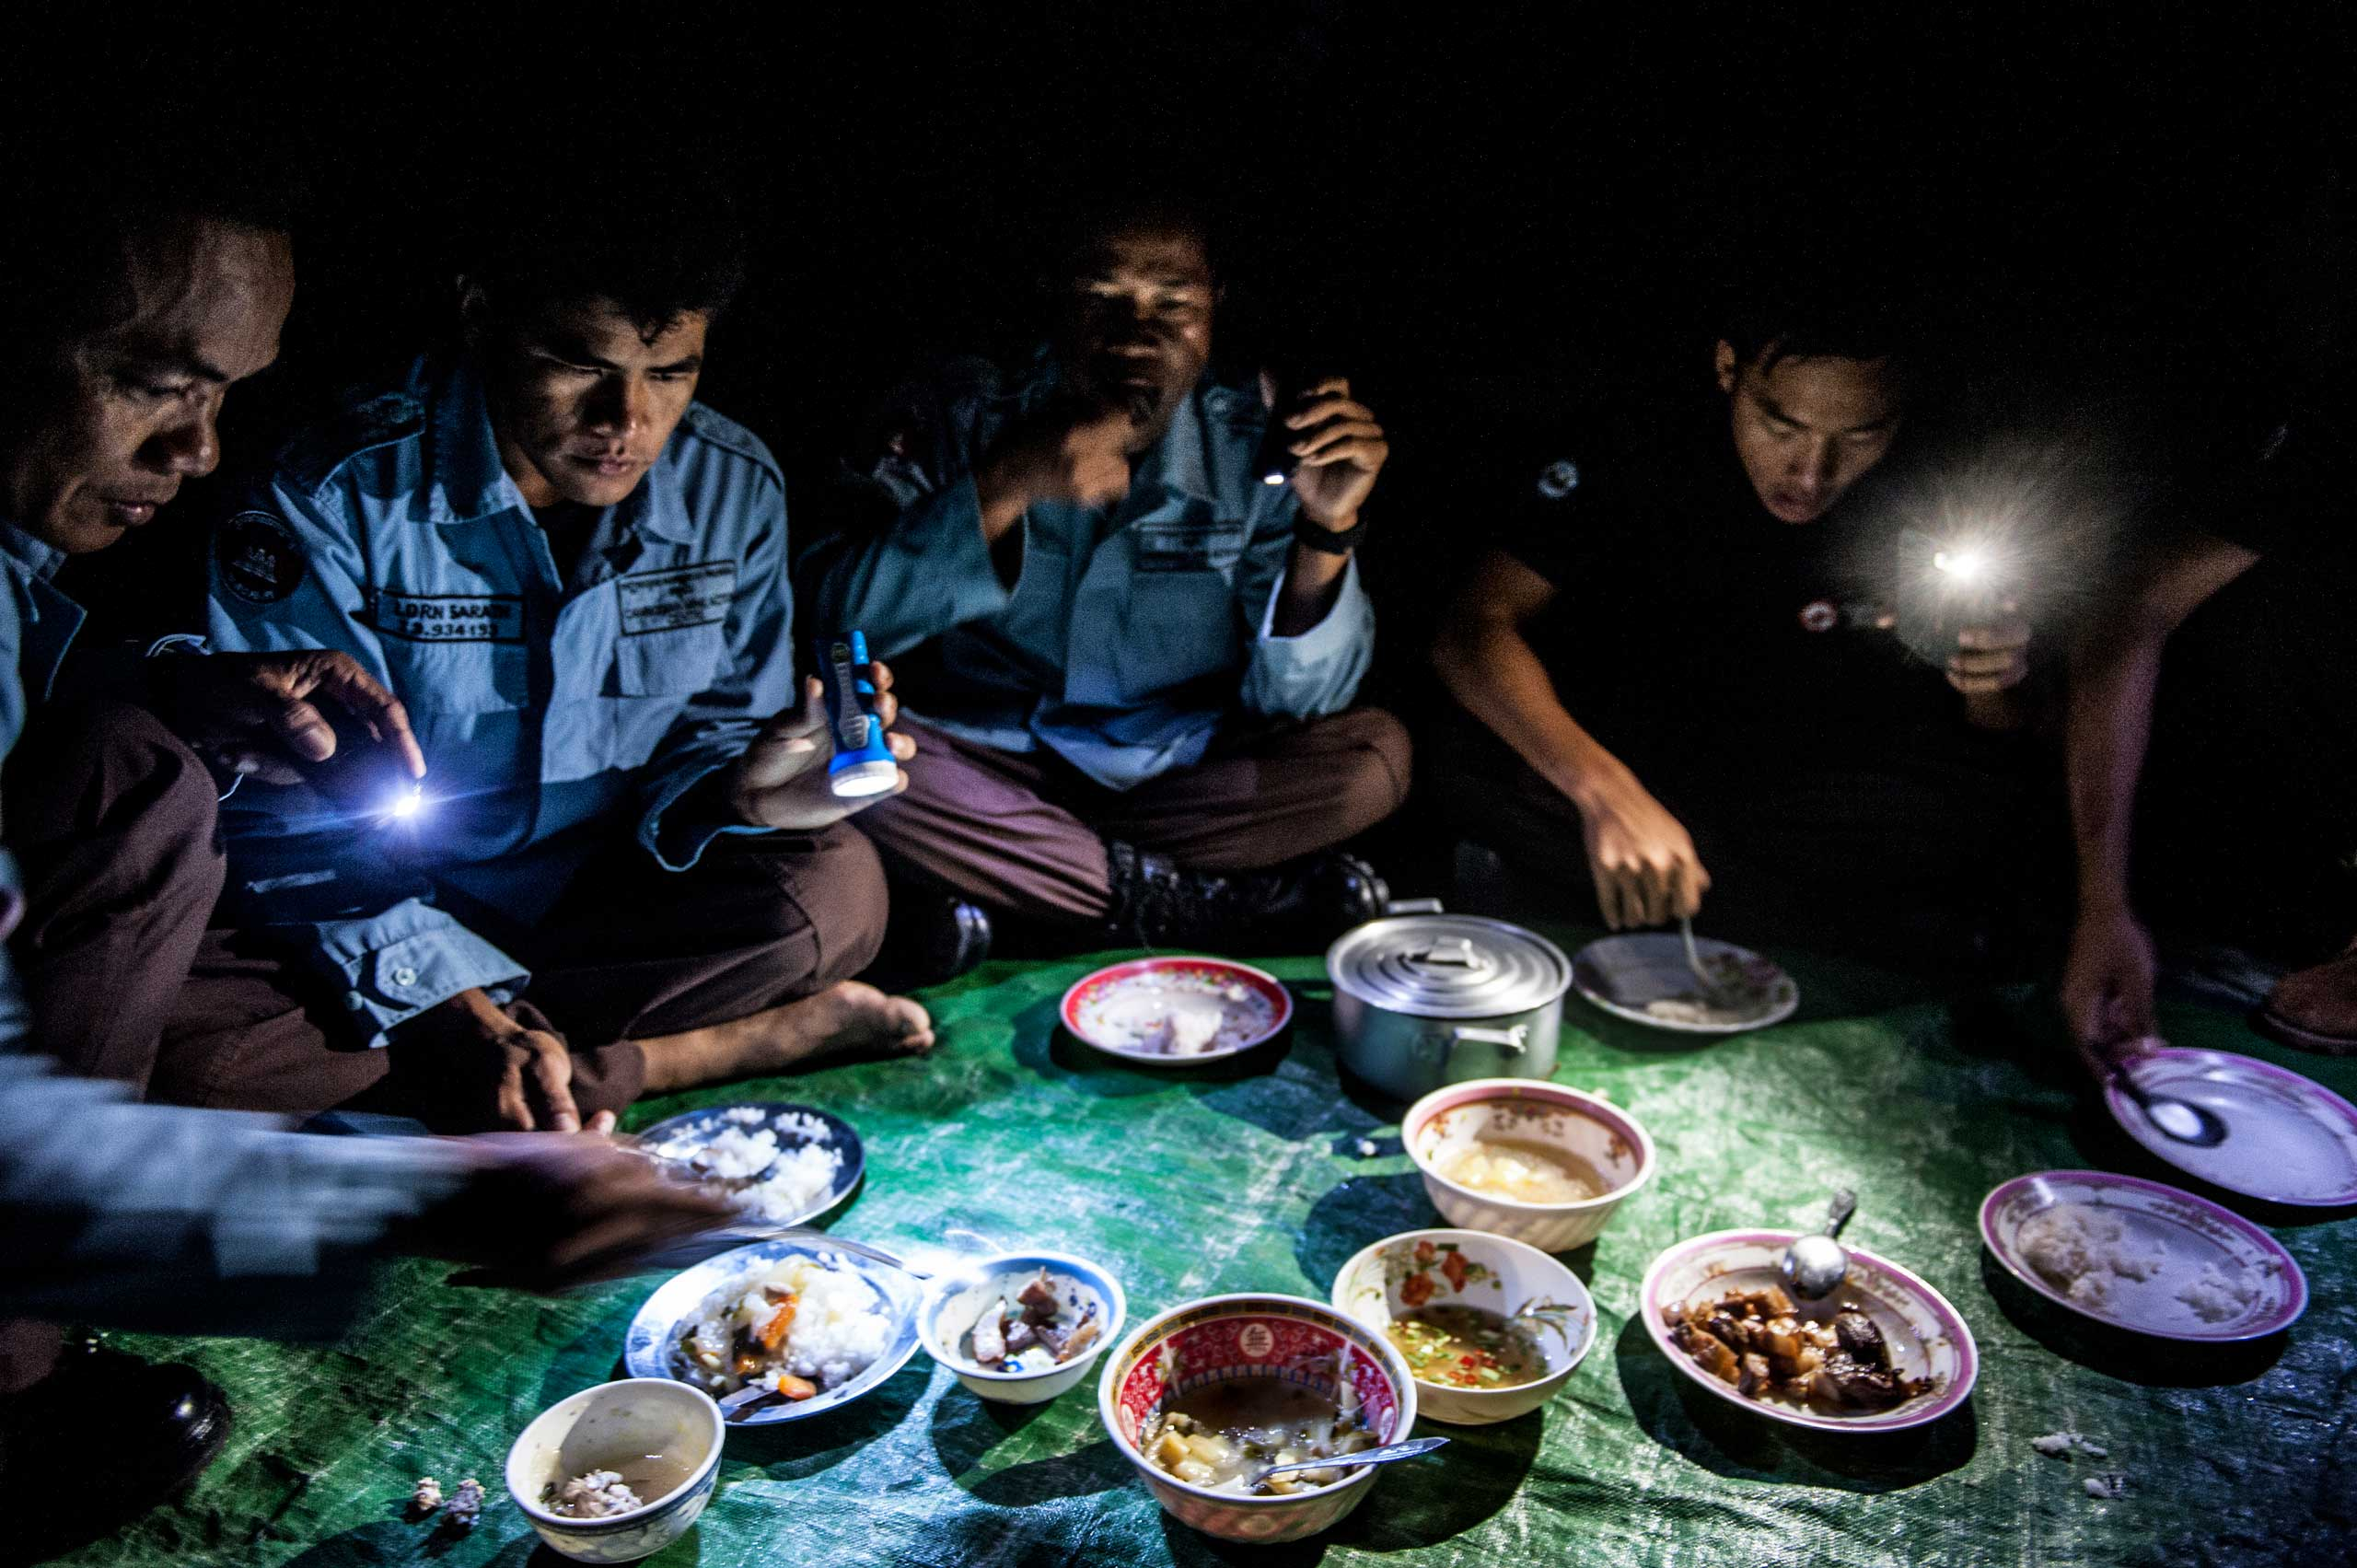 Members of the UXO salvage dive team share breakfast together ahead of a training exercise in March 2014. The divers live together in barracks and eat and cook together, every aspect of their daily life is aimed at creating a tight and cohesive team.